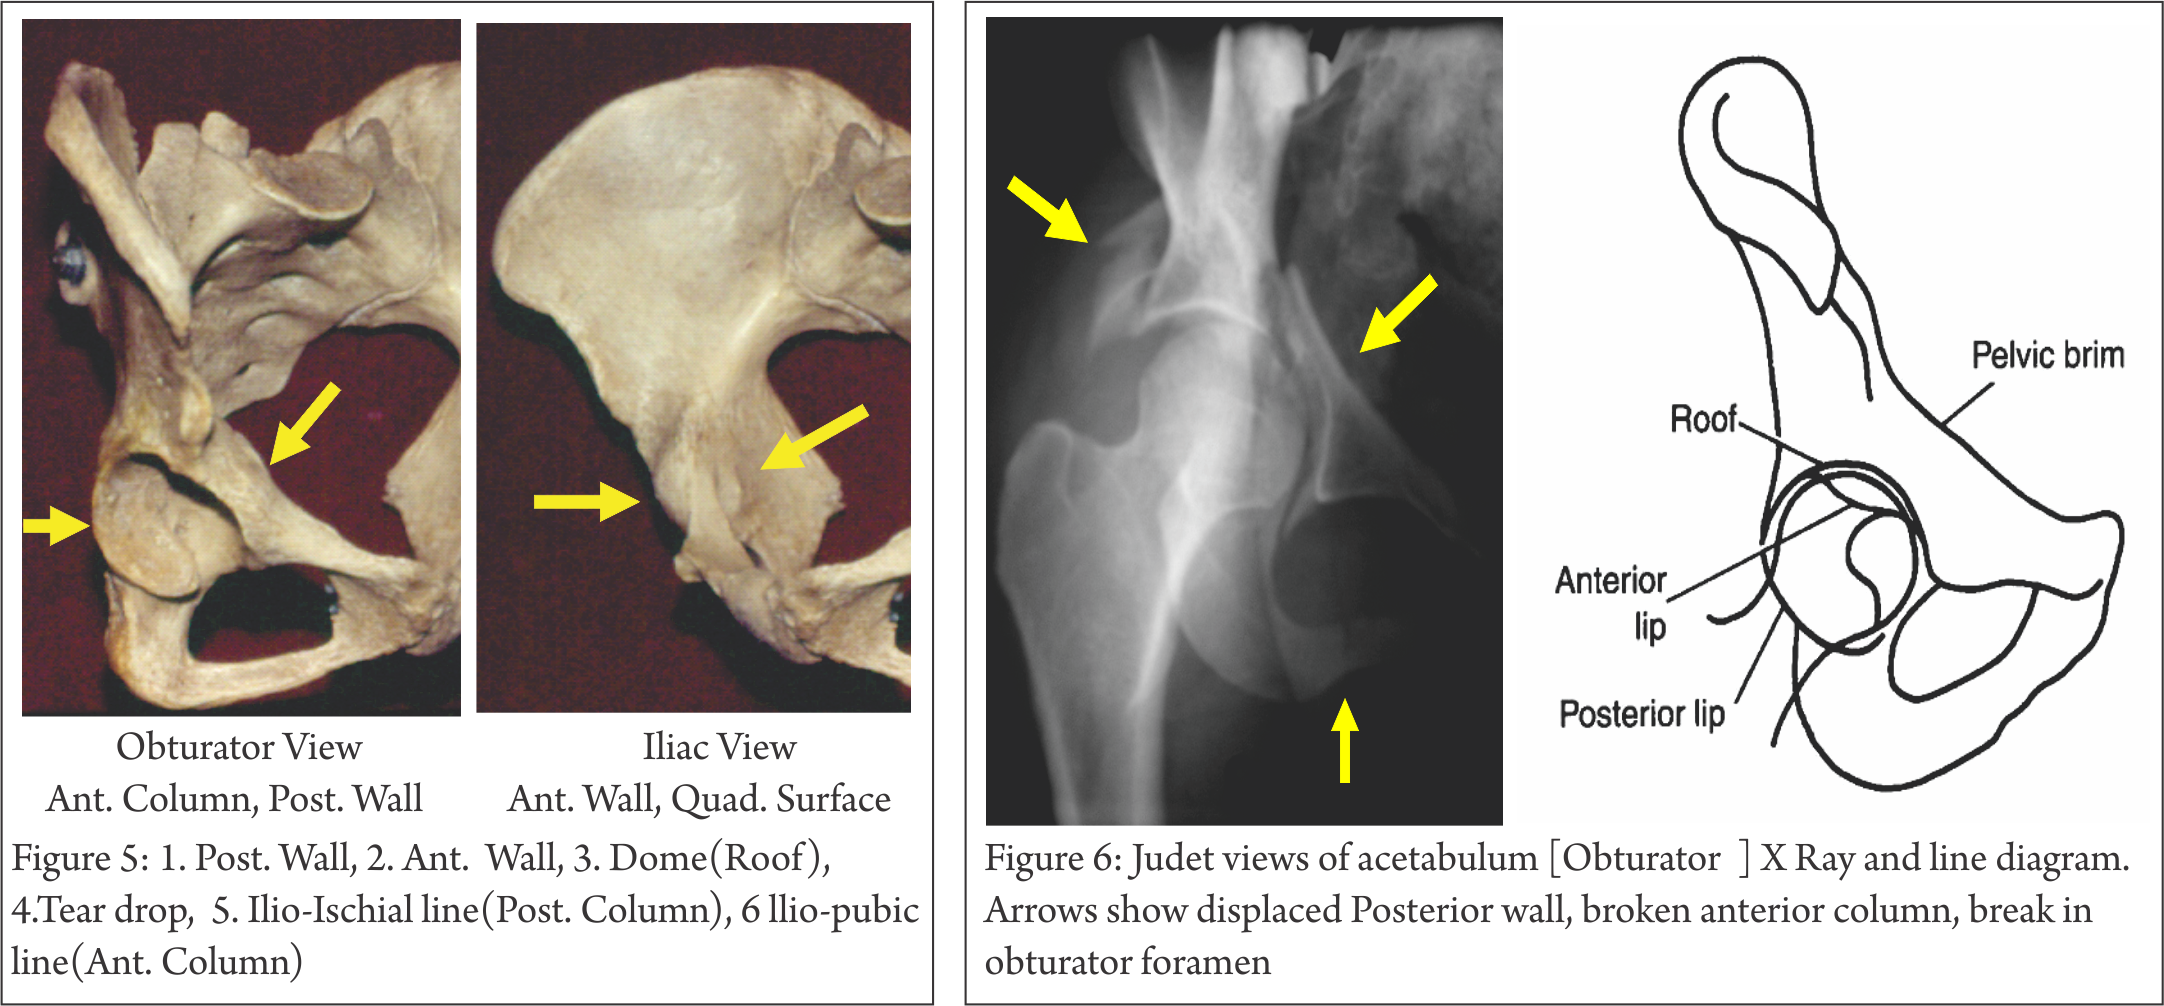 Understanding Clinical Radiology Of Fracture Acetabulum Trauma